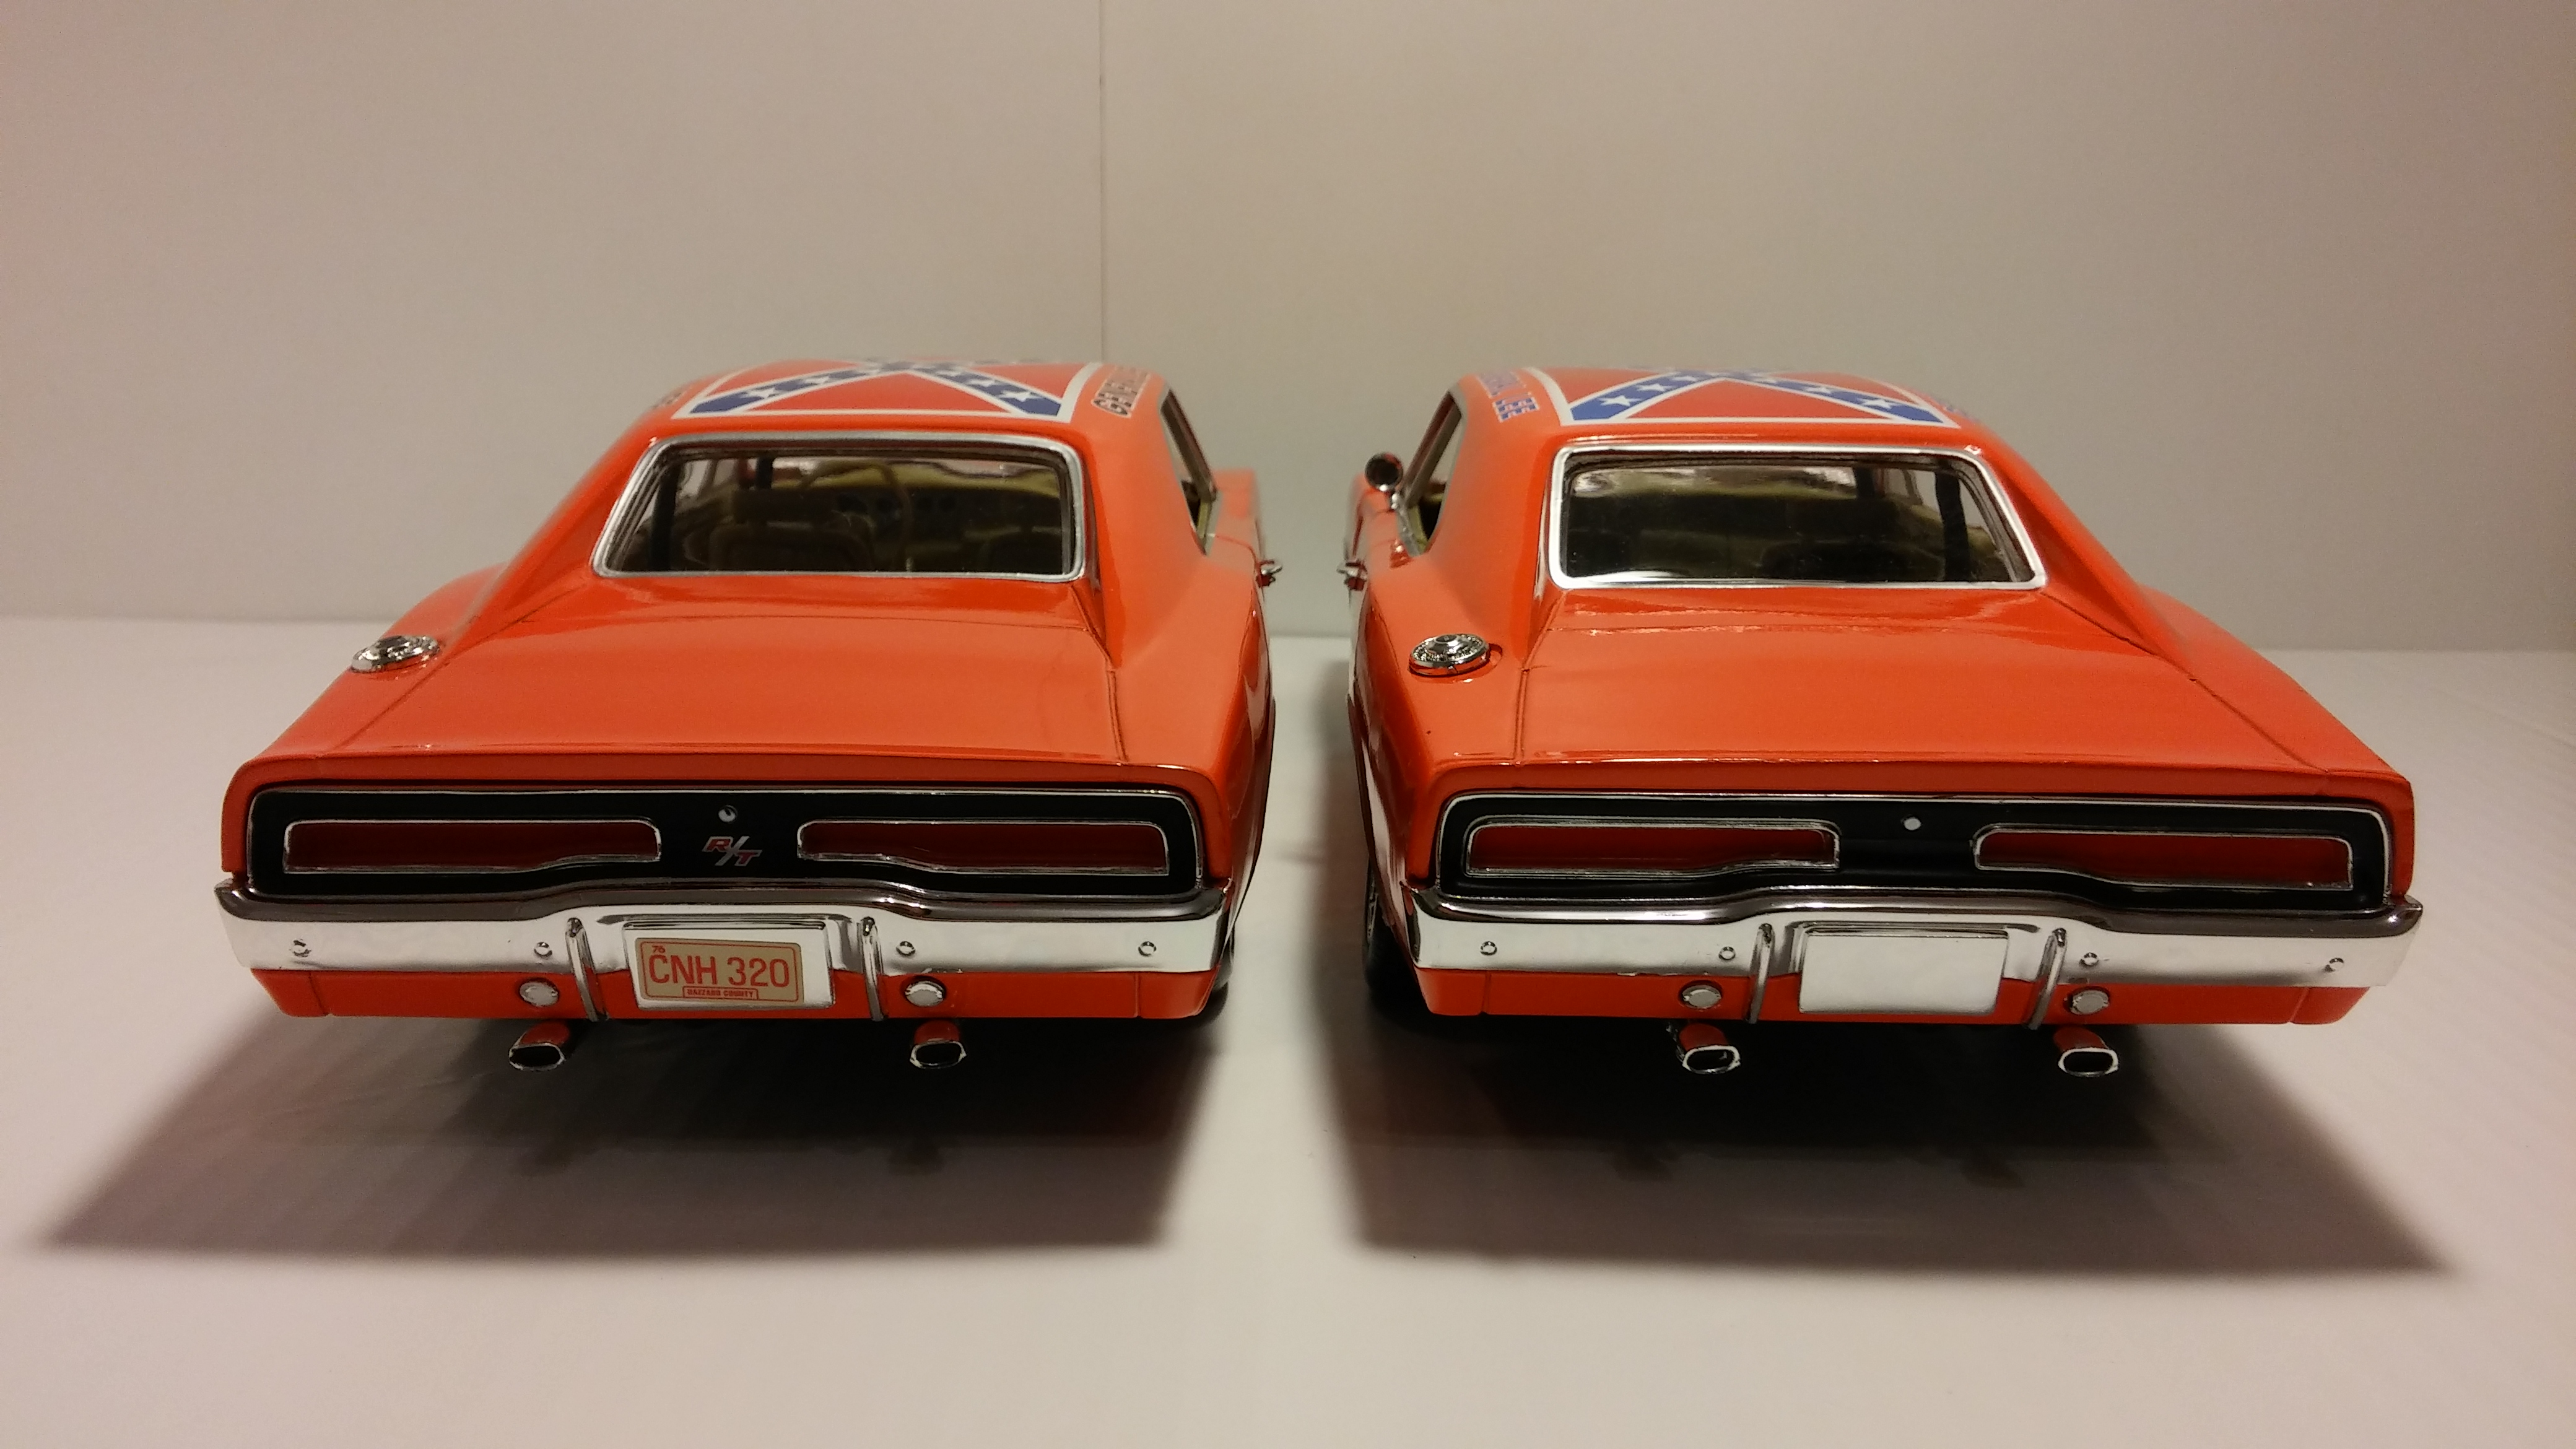 1969 dodge charger r t general lee 1 18 ertl model car motorscotti. Black Bedroom Furniture Sets. Home Design Ideas